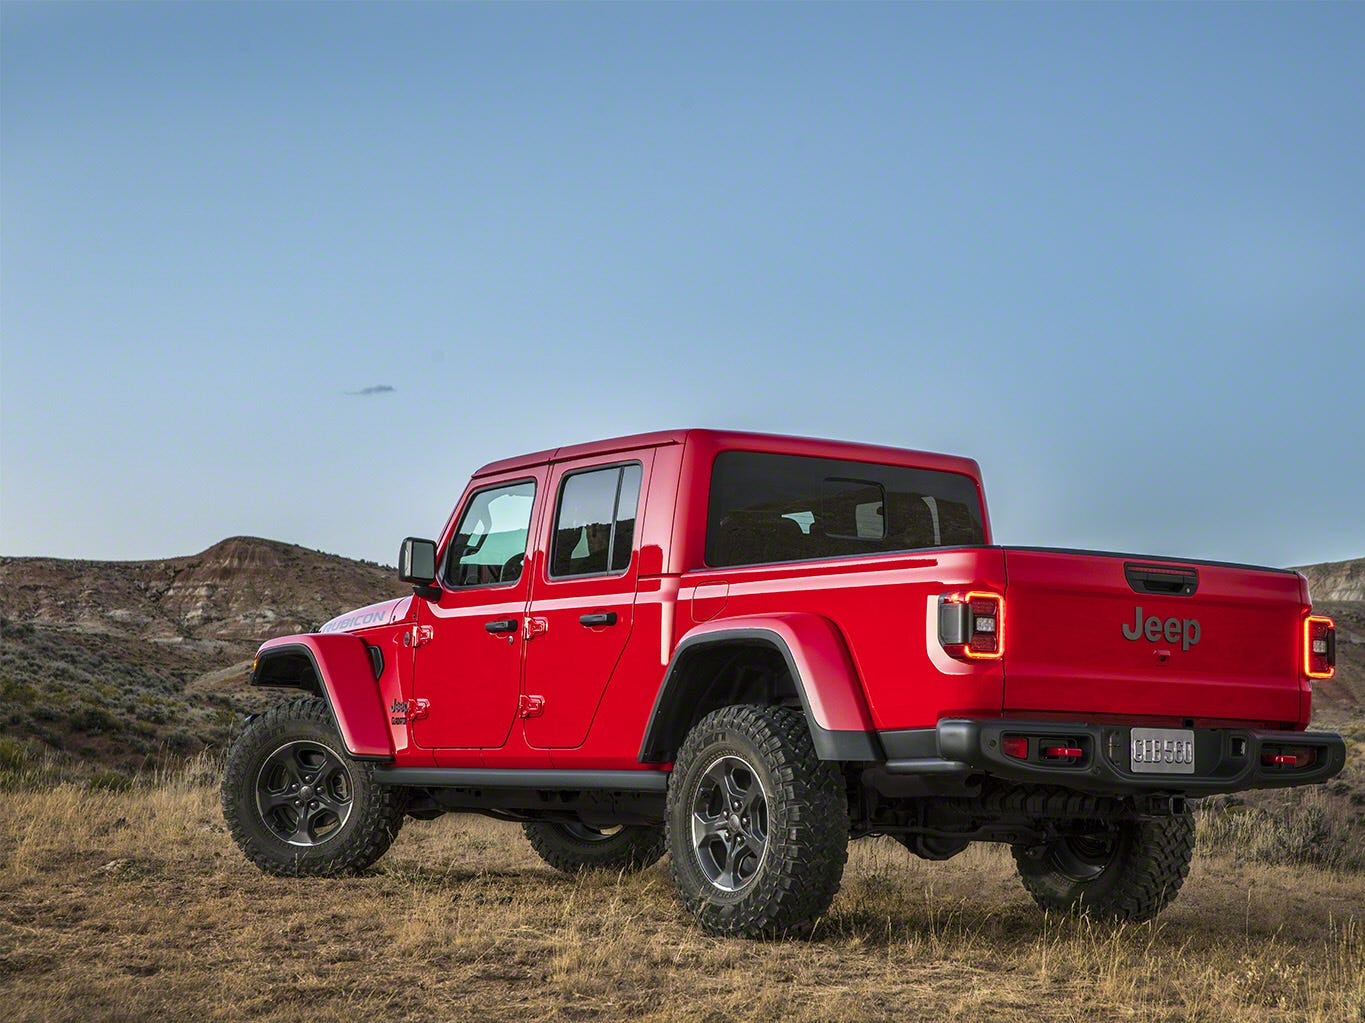 The Jeep Gladiator 2020